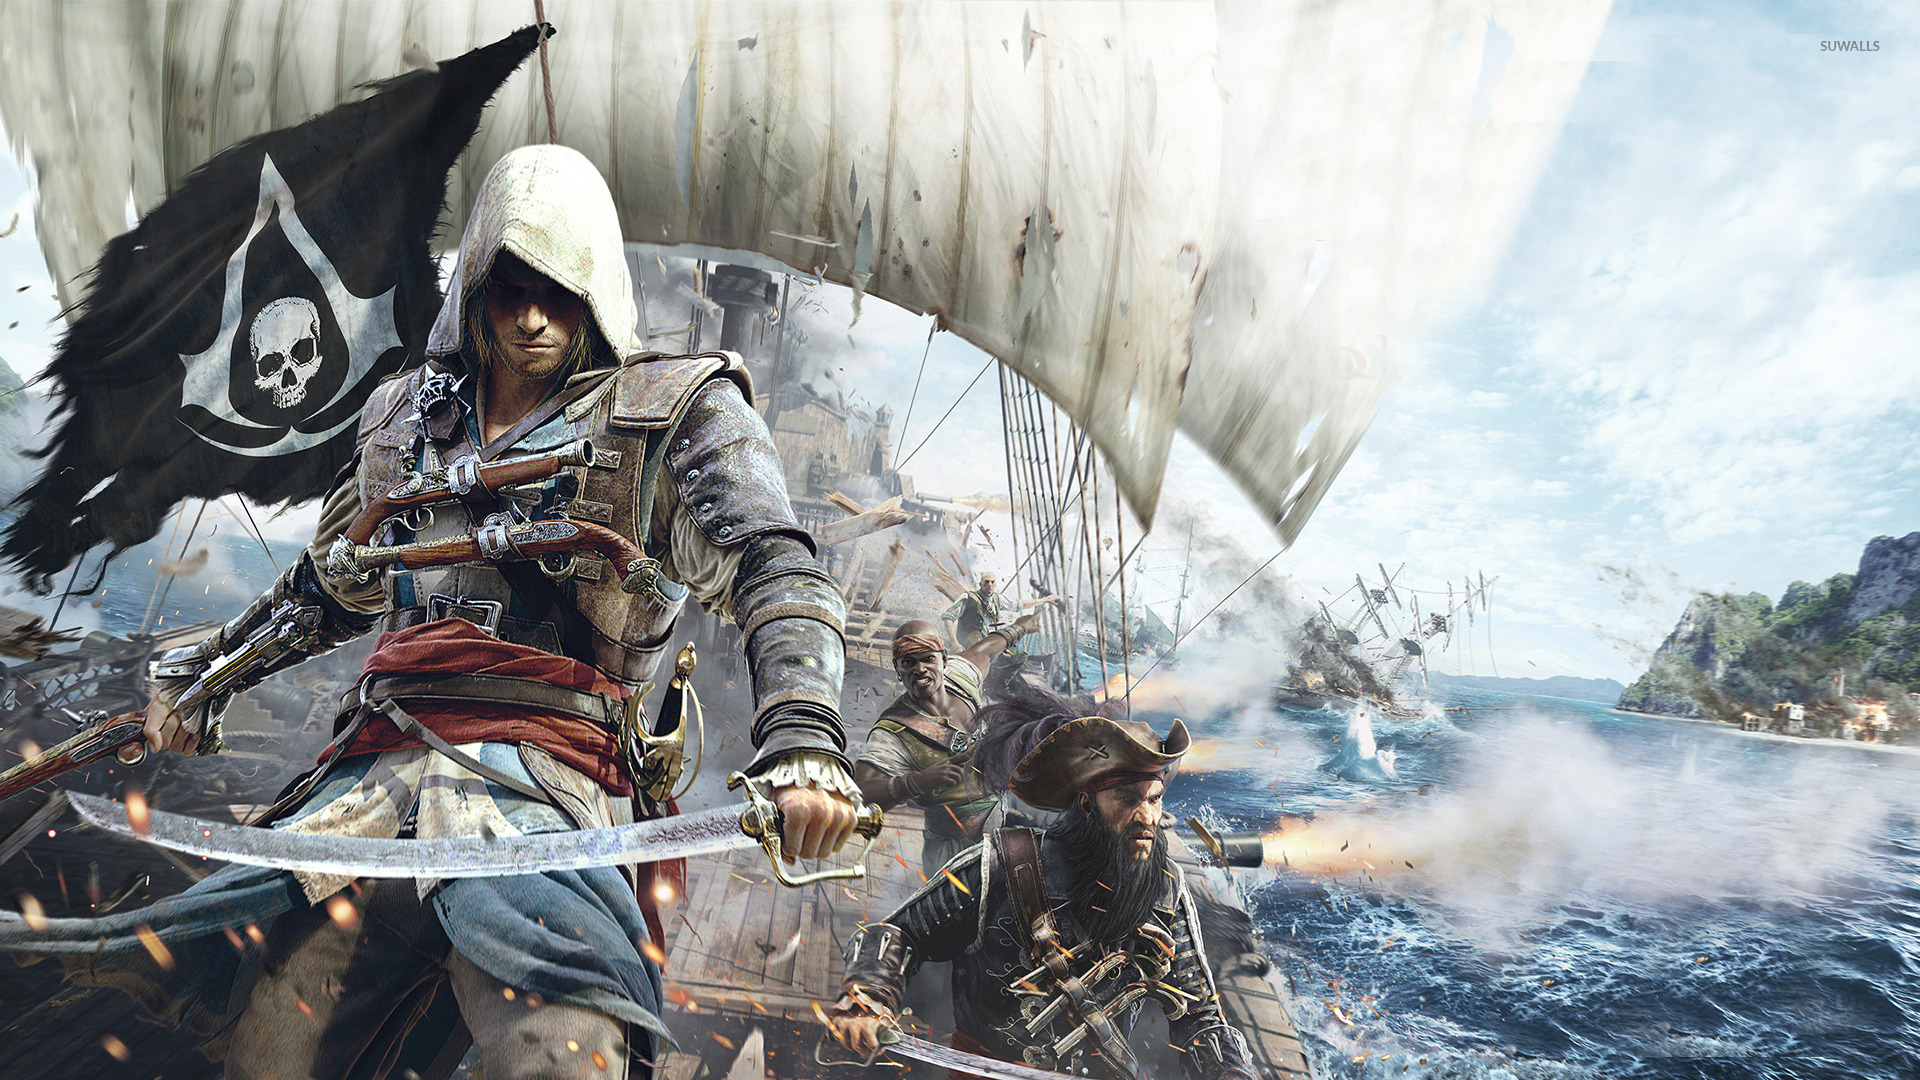 Edward Kenway Assassin S Creed Iv Black Flag 7 Wallpaper